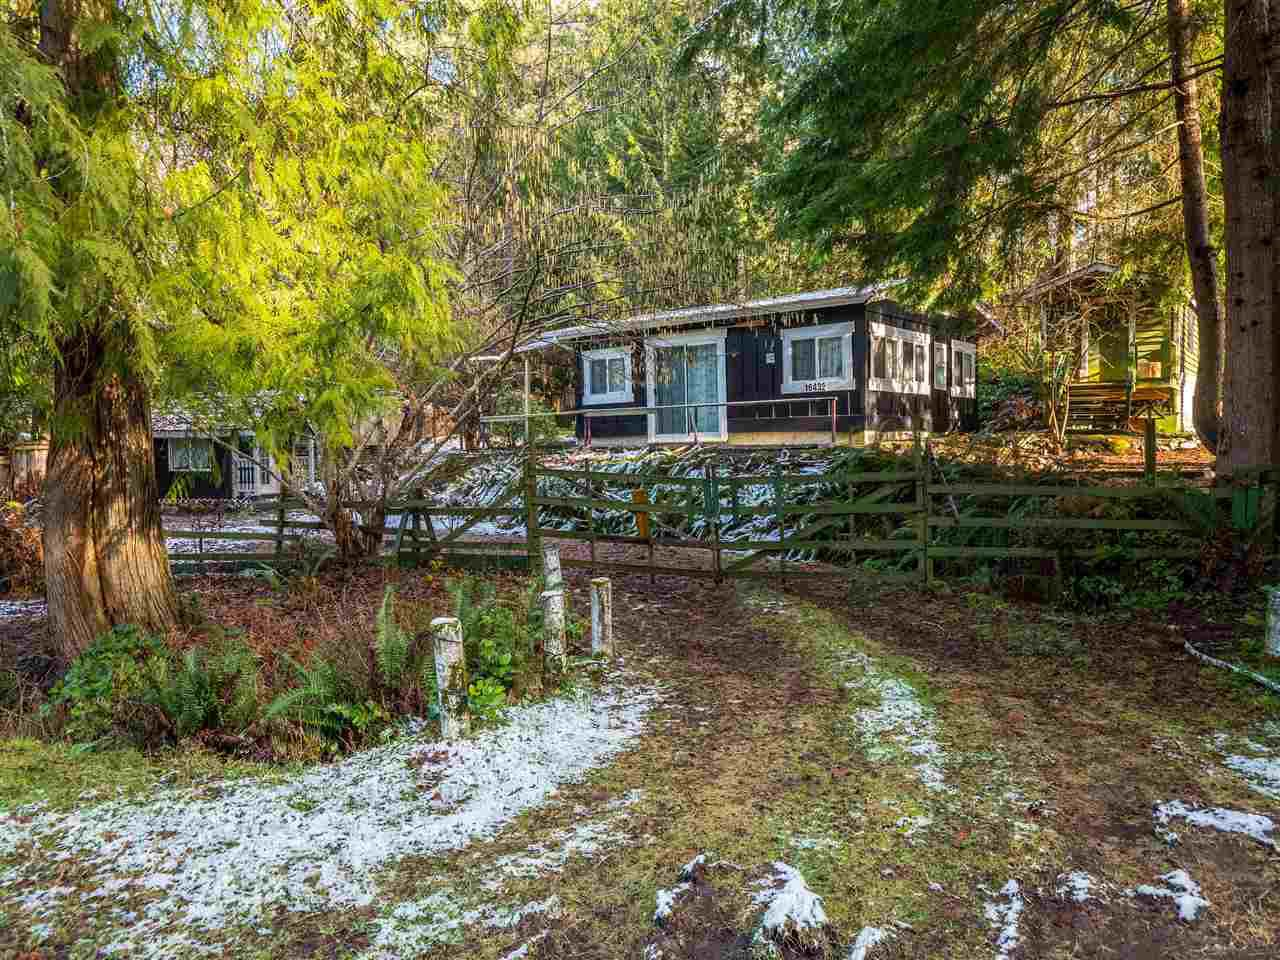 Main Photo: 16432 TIMBERLINE Road in Egmont: Pender Harbour Egmont House for sale (Sunshine Coast)  : MLS®# R2433652